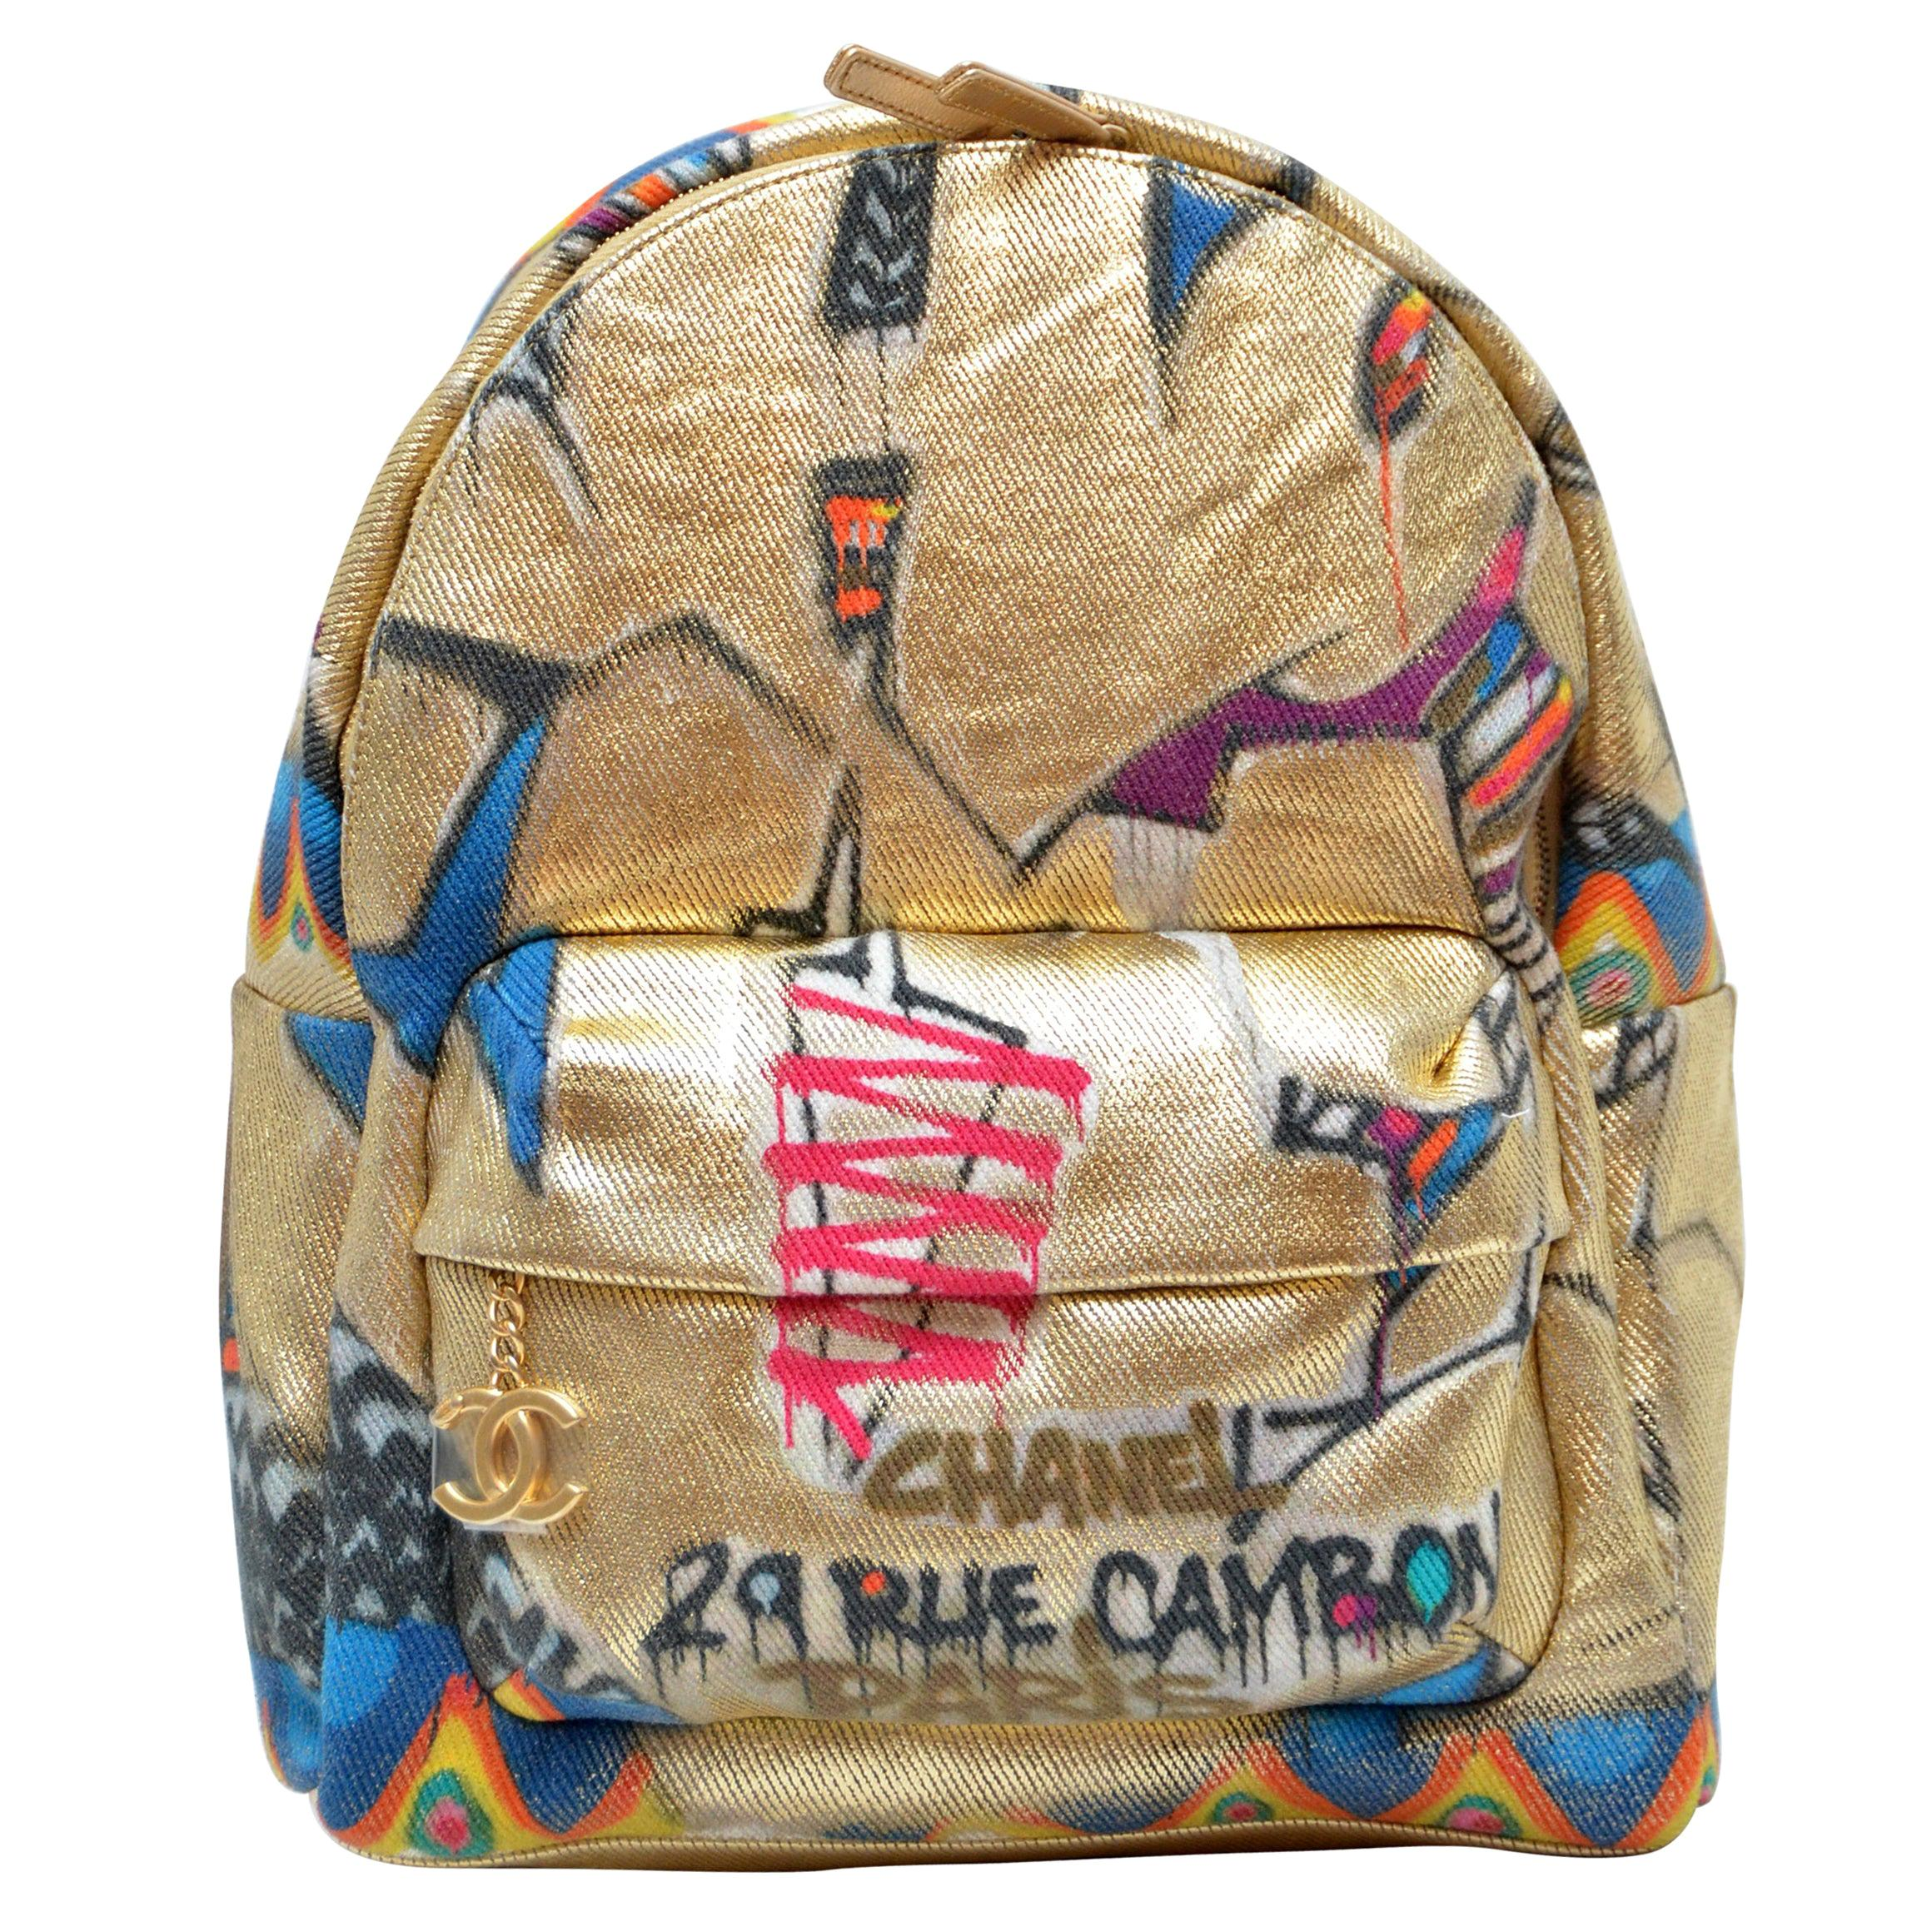 Chanel Graffiti Gold Backpack New With Tags For Sale At 1stdibs